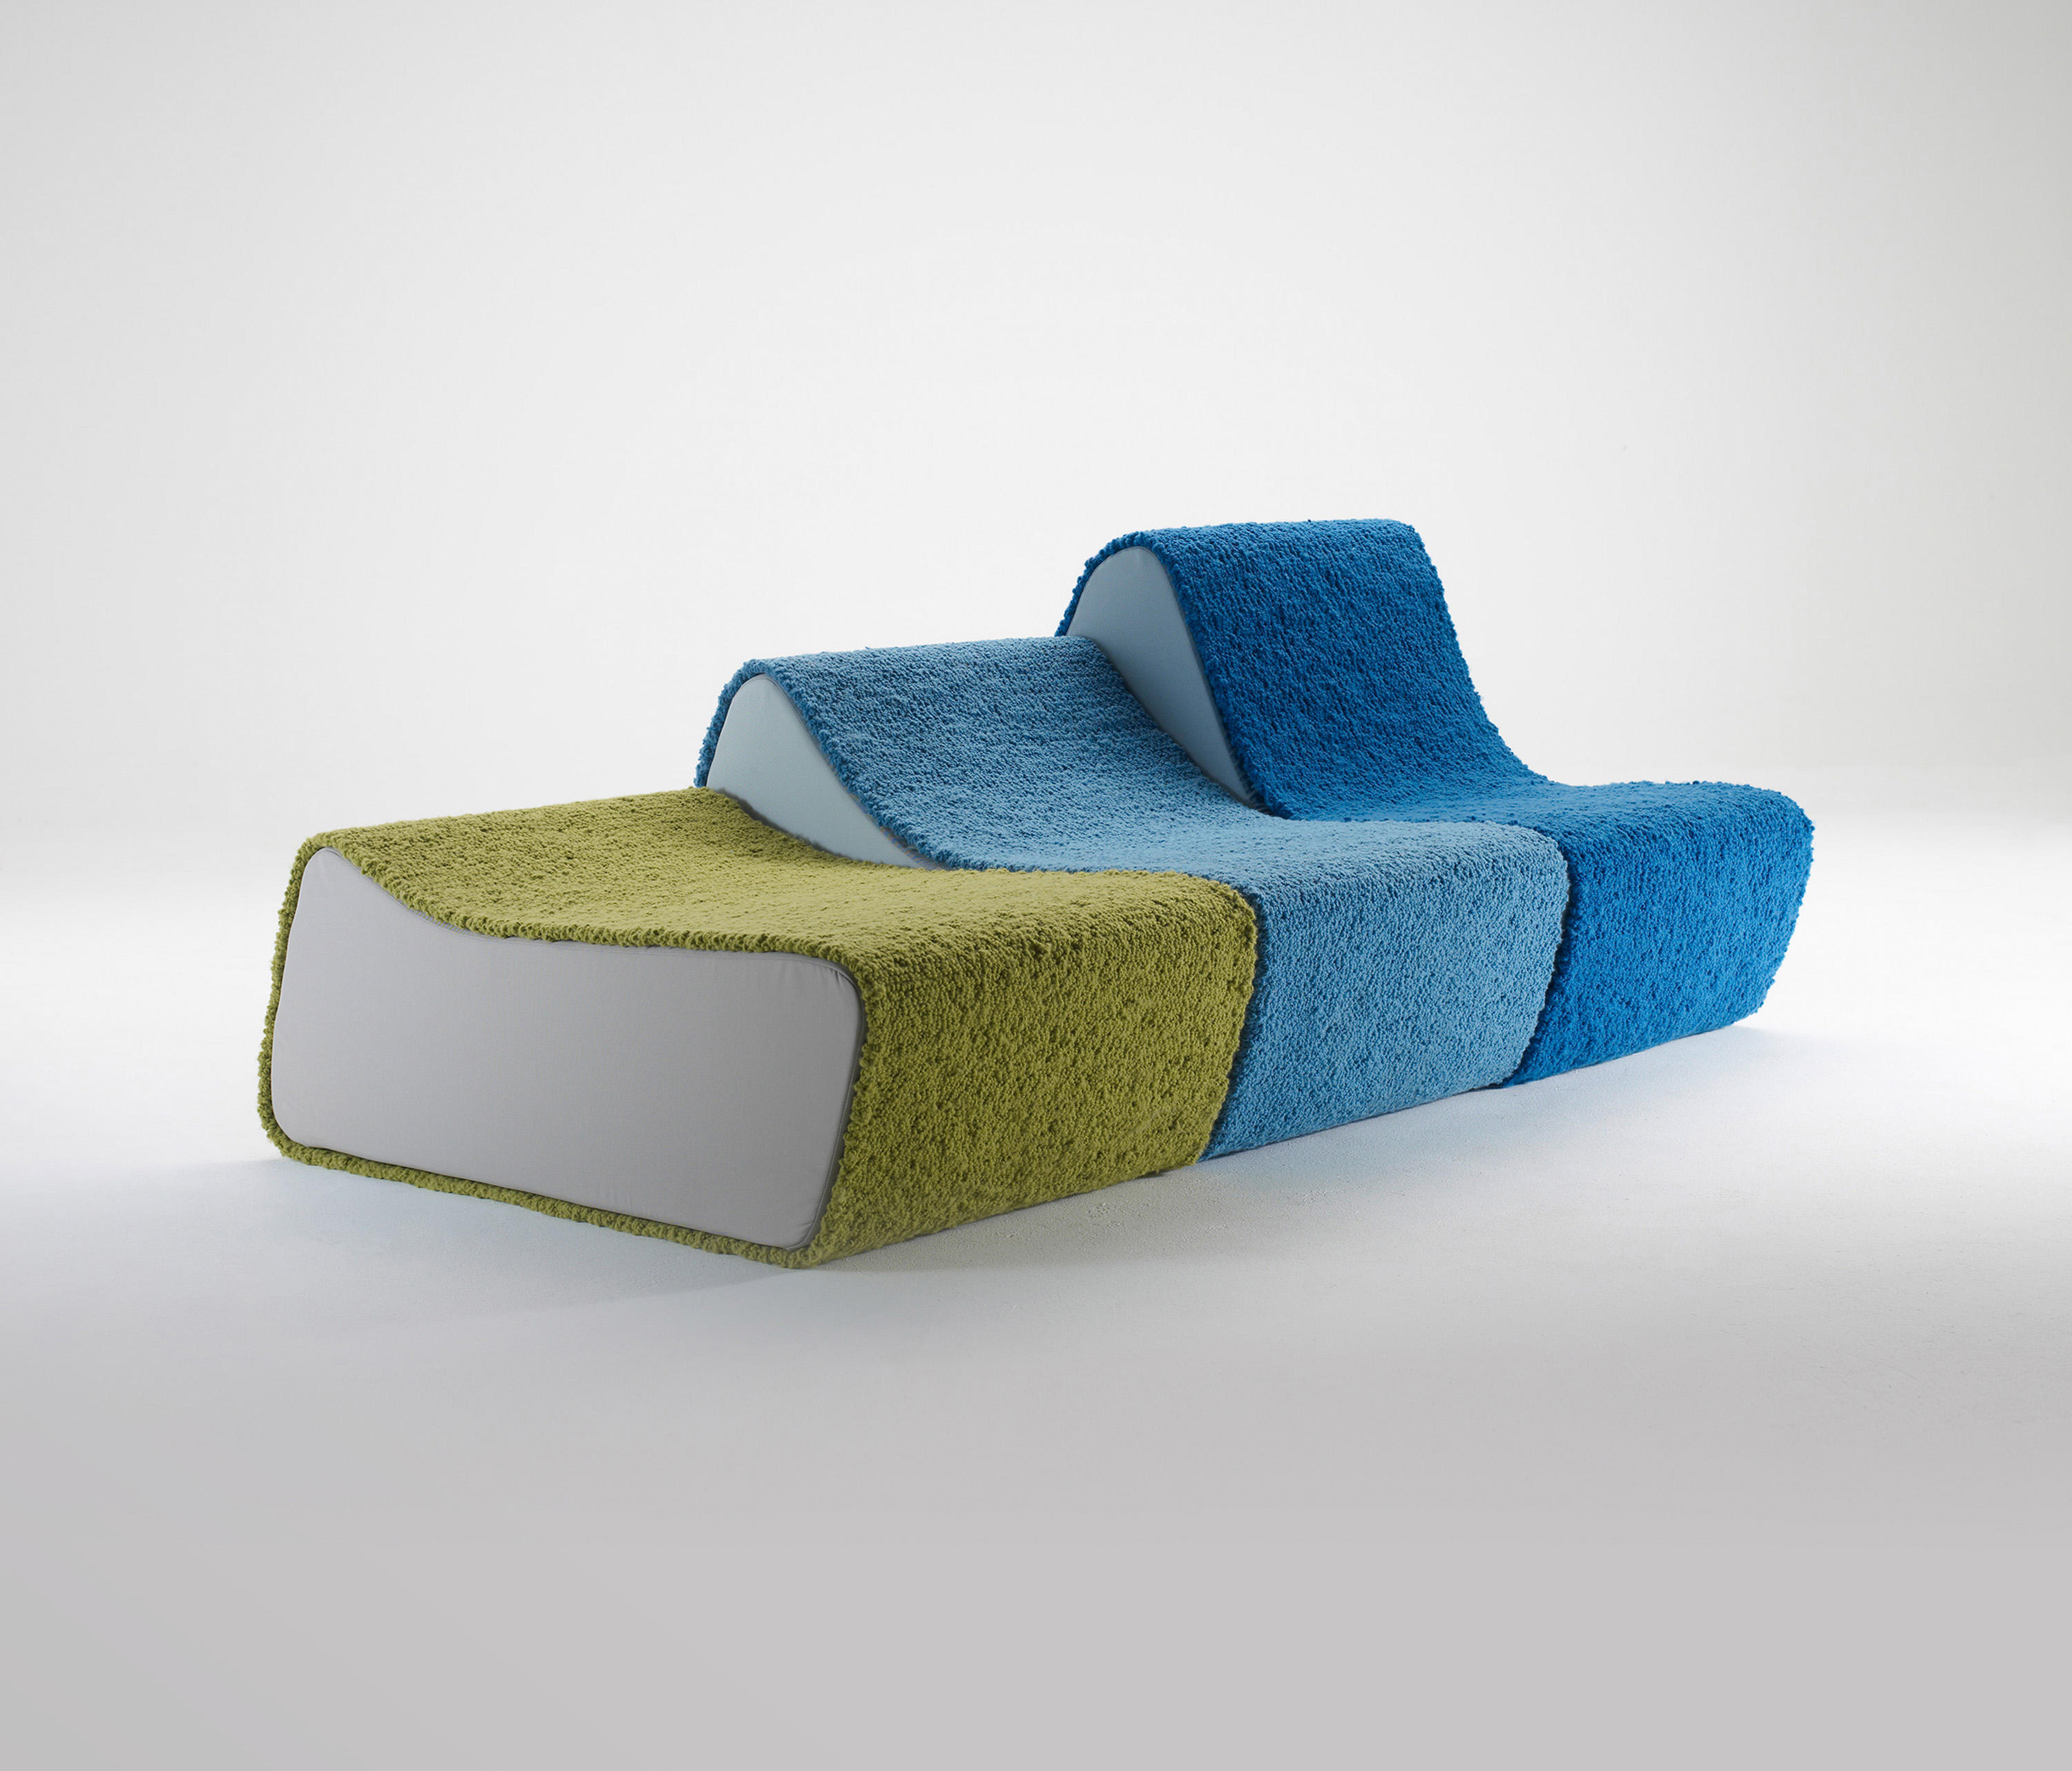 Sitzelemente Couch : Sofa surfer hereo